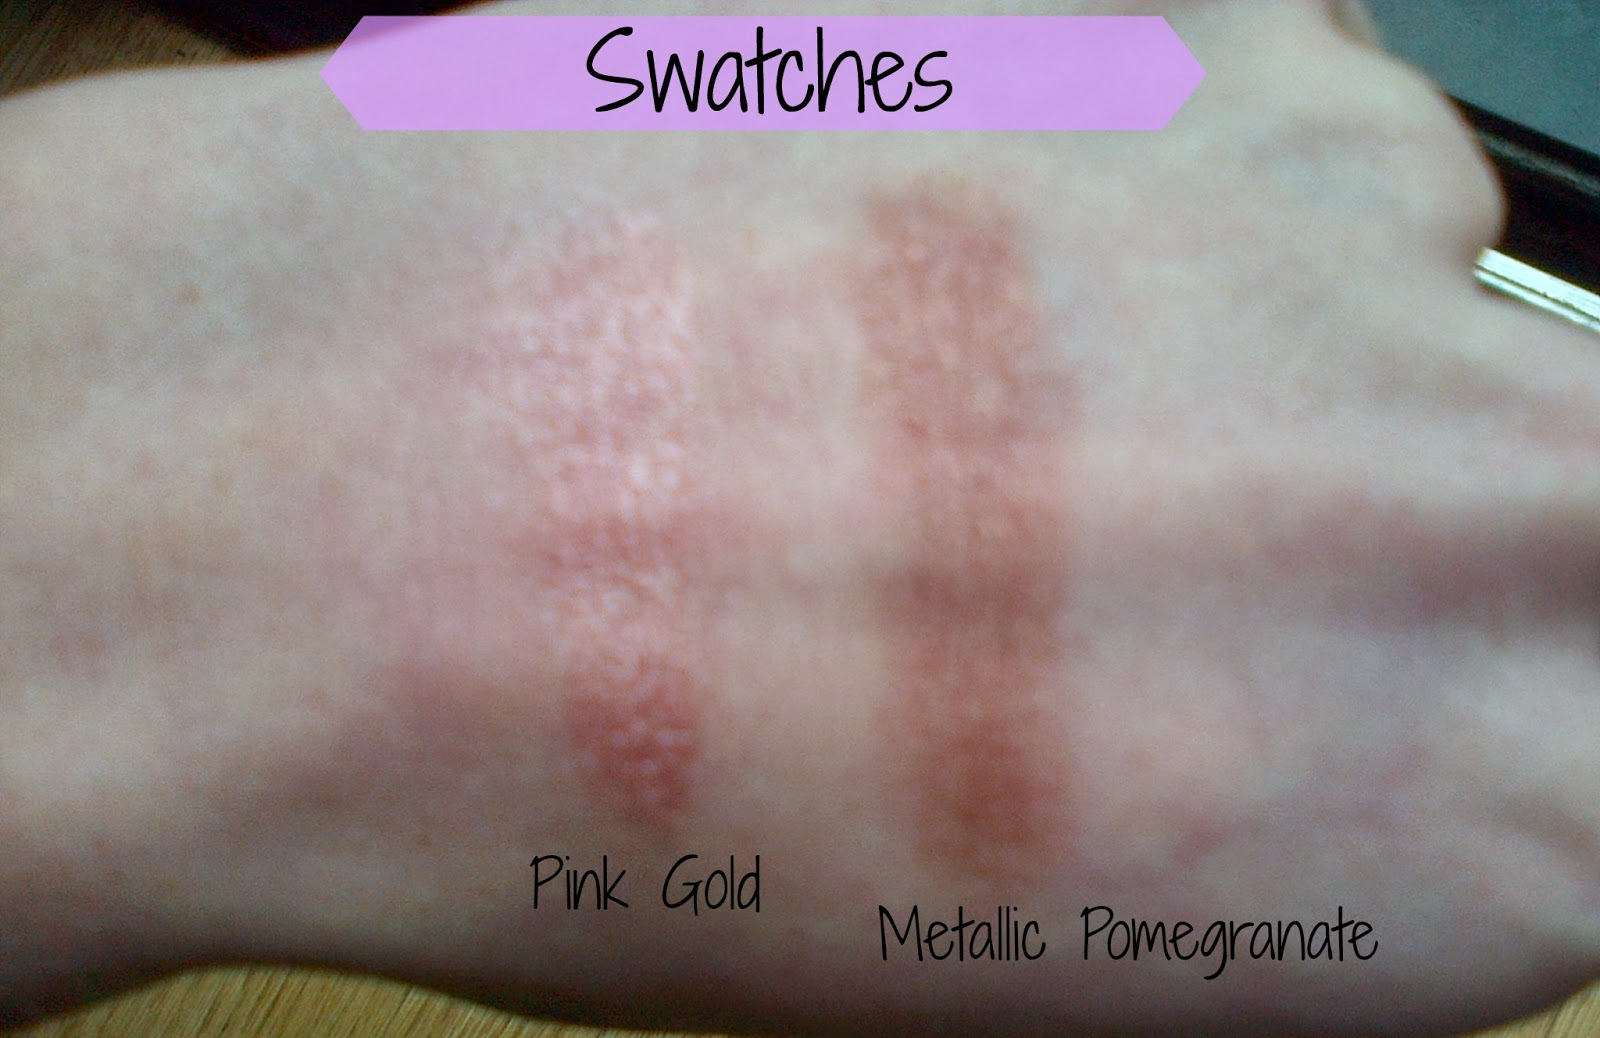 Maybelline Color Tattoos Pink Gold Swatch, Maybelline Metallic Pomegranate Swatch